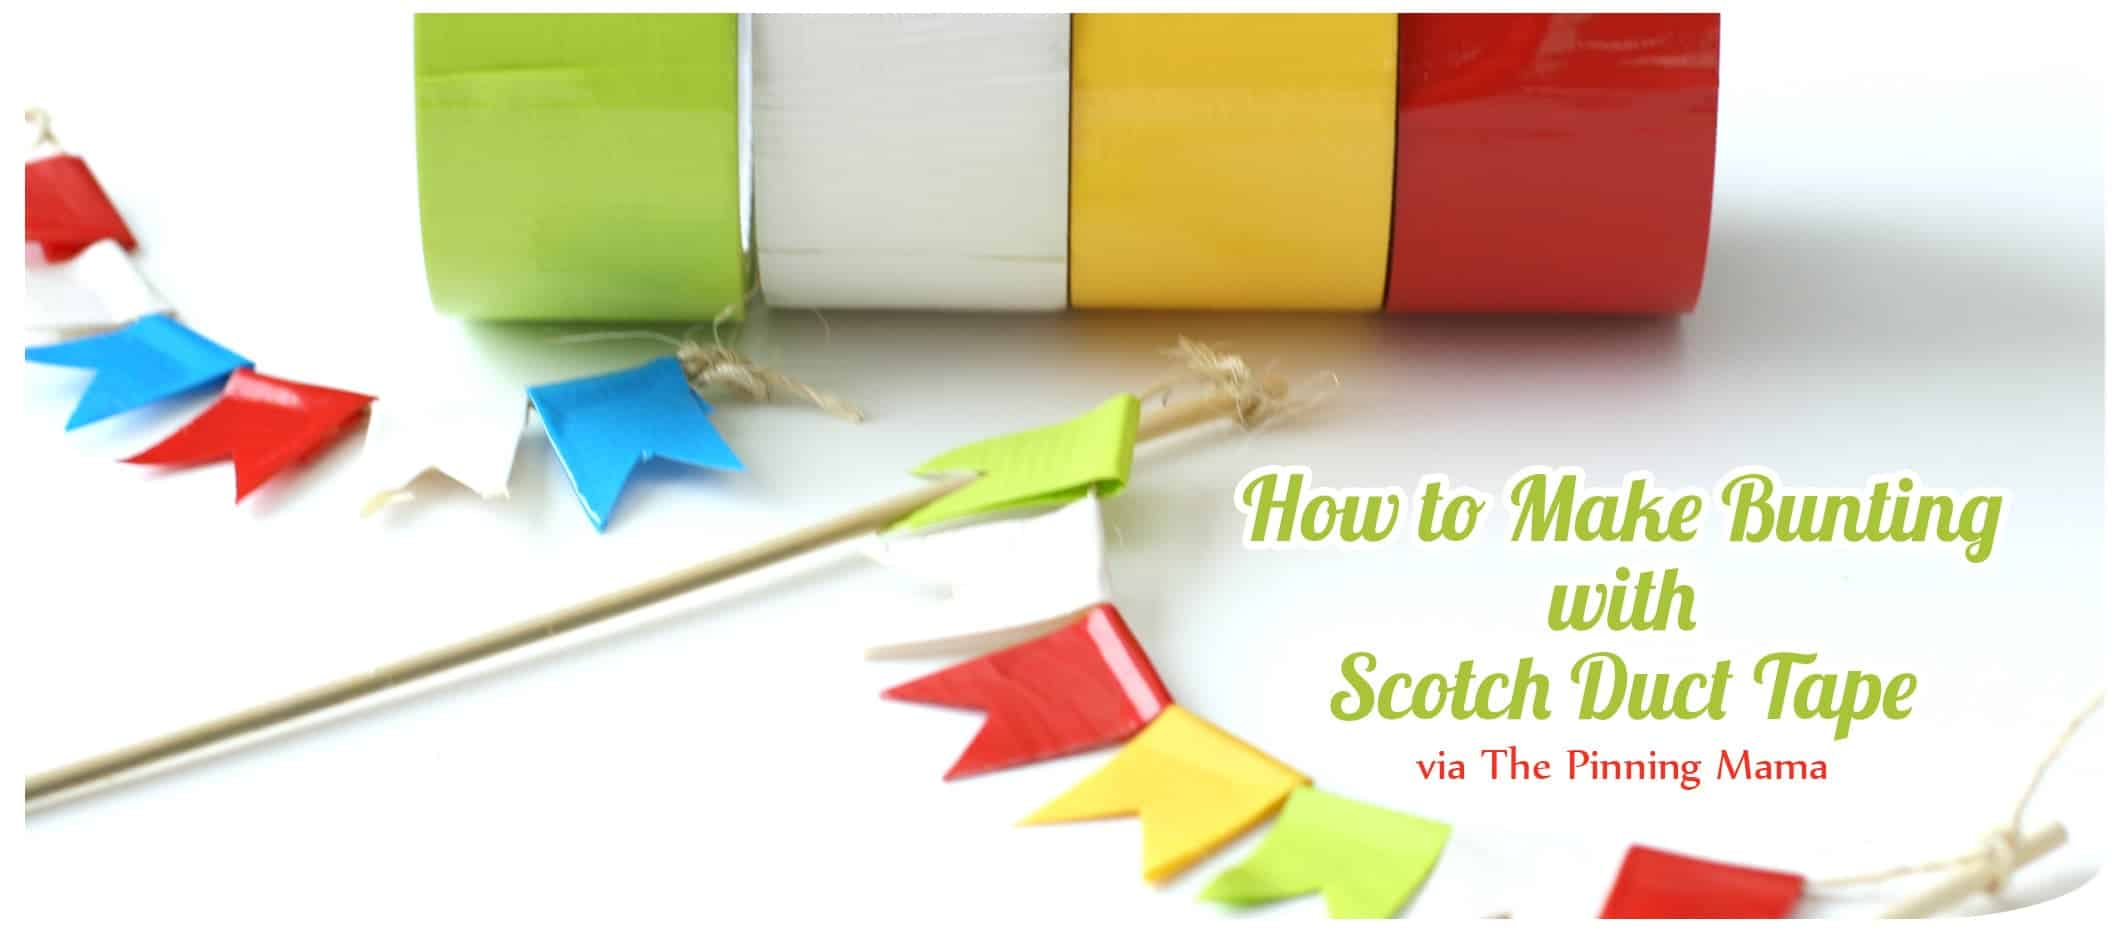 scotch tape diy bunting www.thepinningmama.com